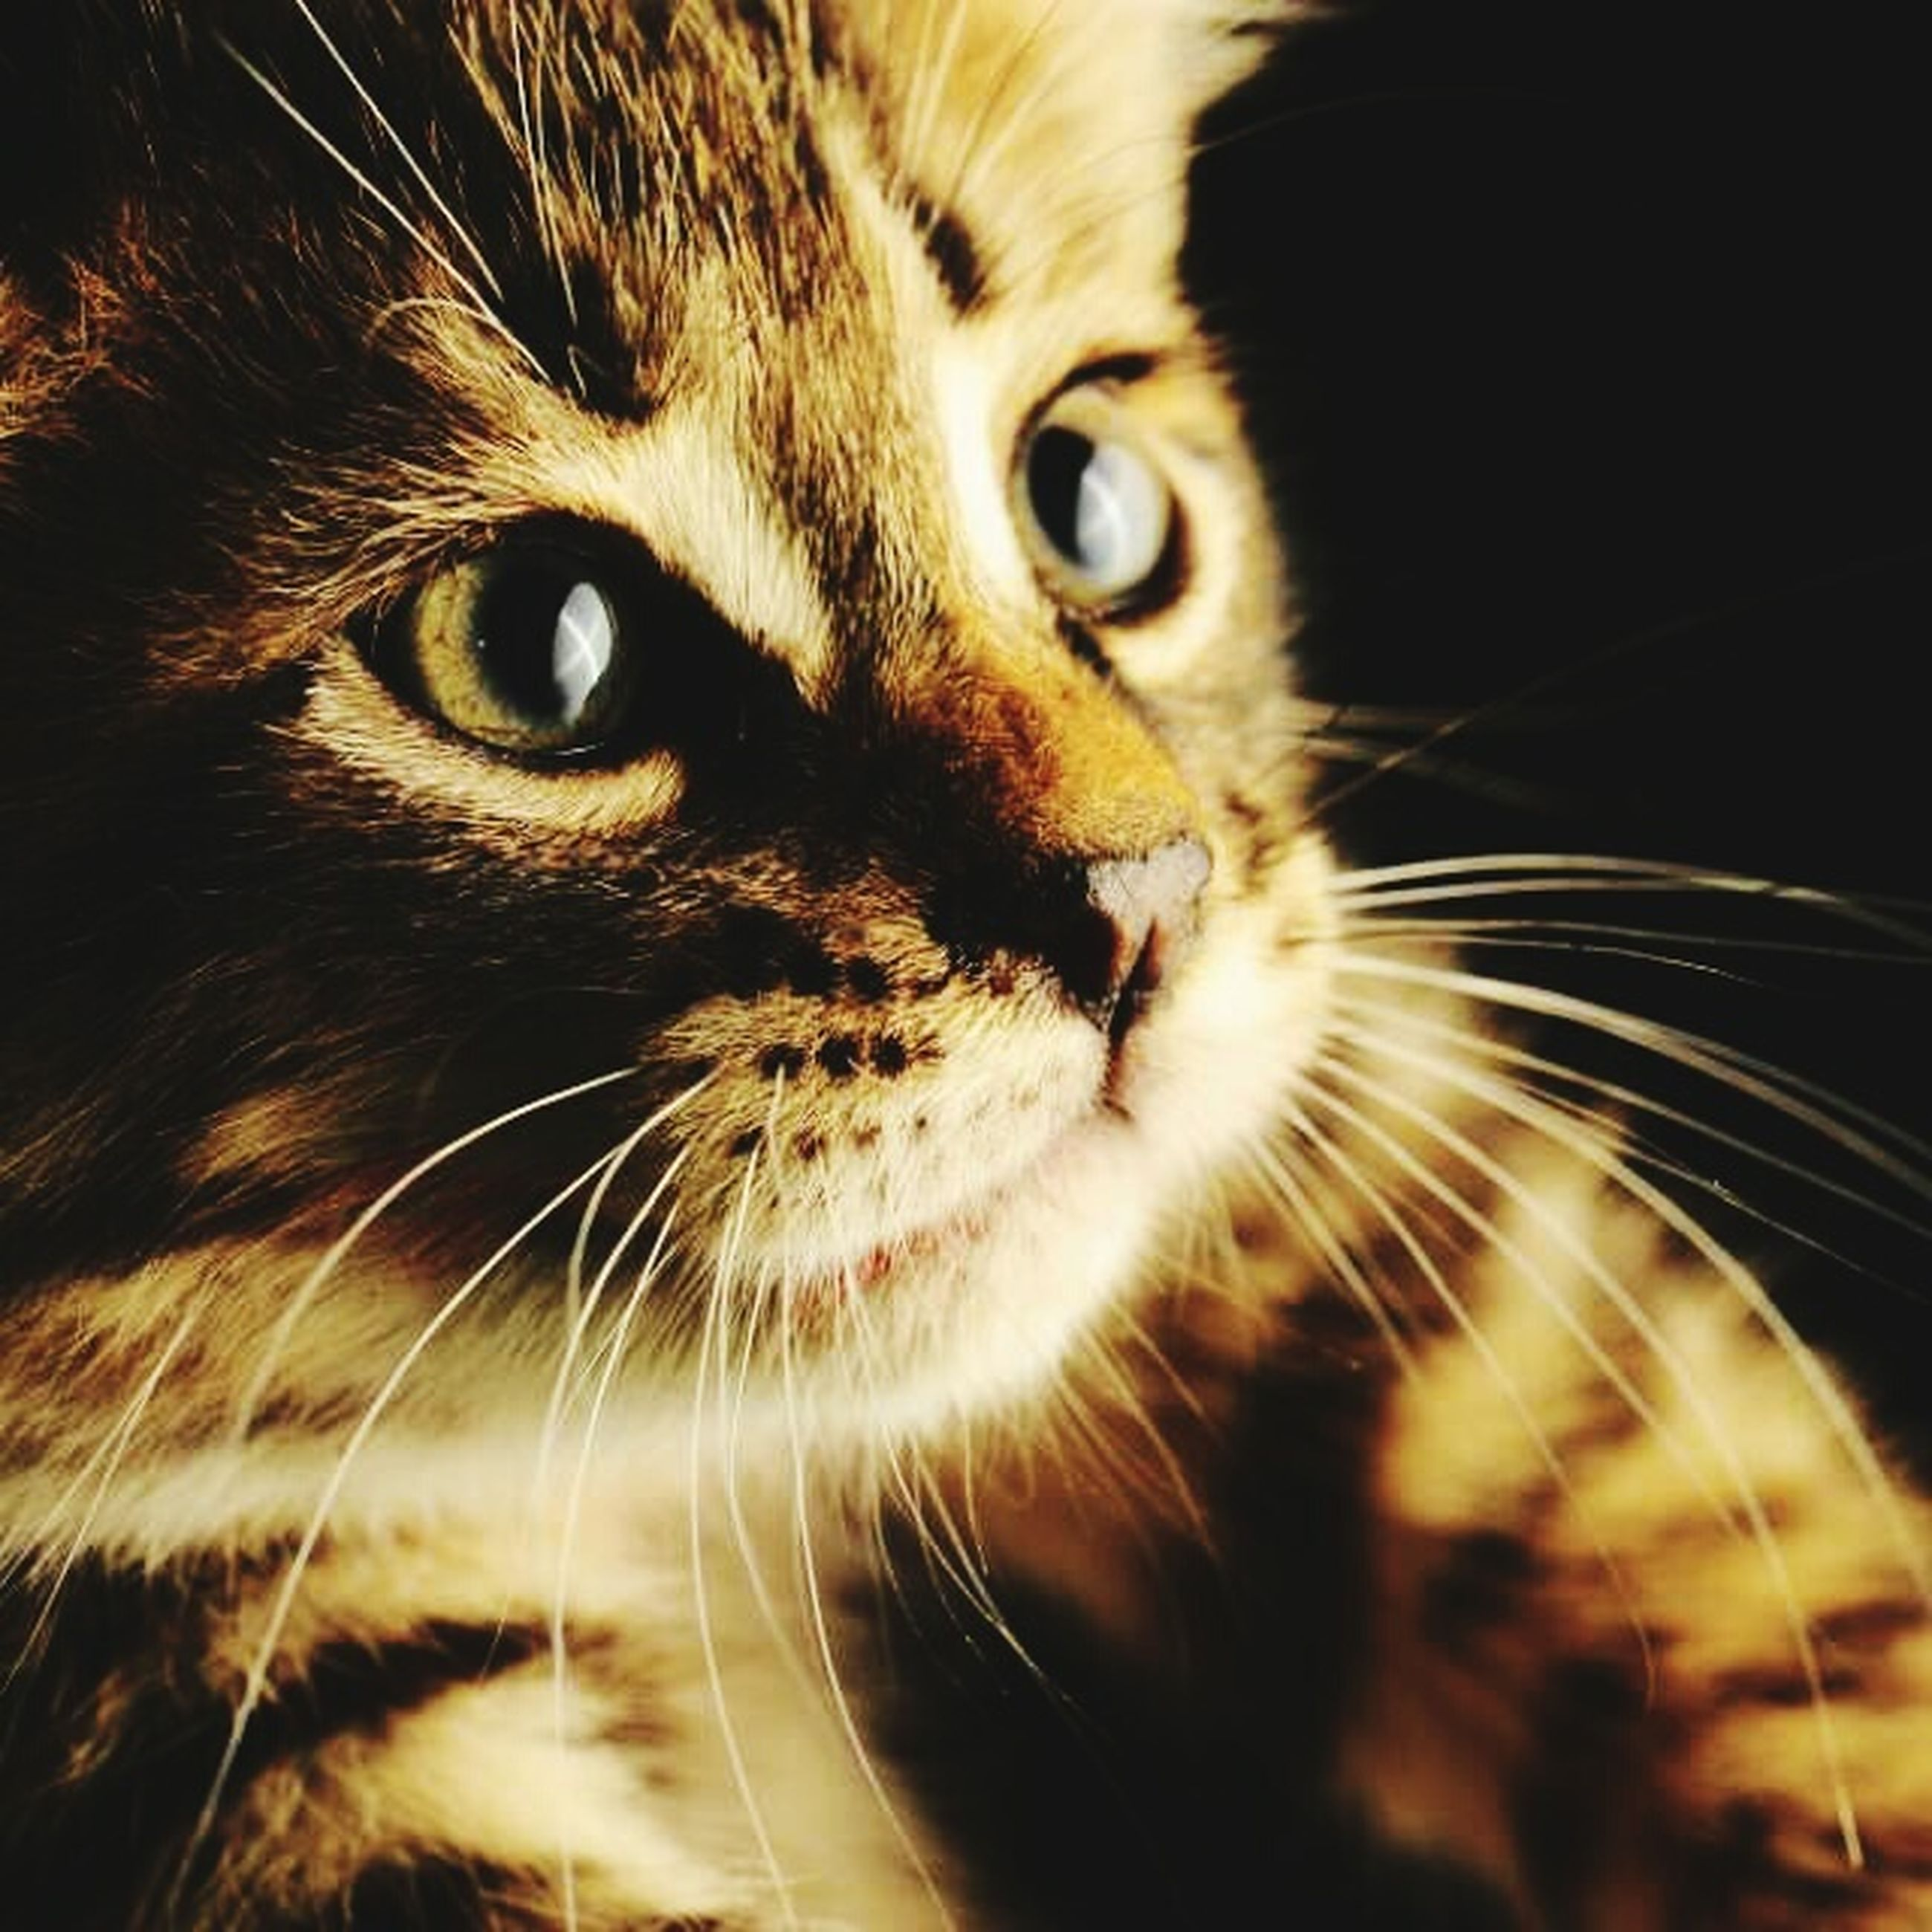 domestic cat, cat, feline, one animal, pets, whisker, animal themes, domestic animals, mammal, close-up, animal head, animal eye, portrait, looking at camera, indoors, staring, animal body part, alertness, whiskers